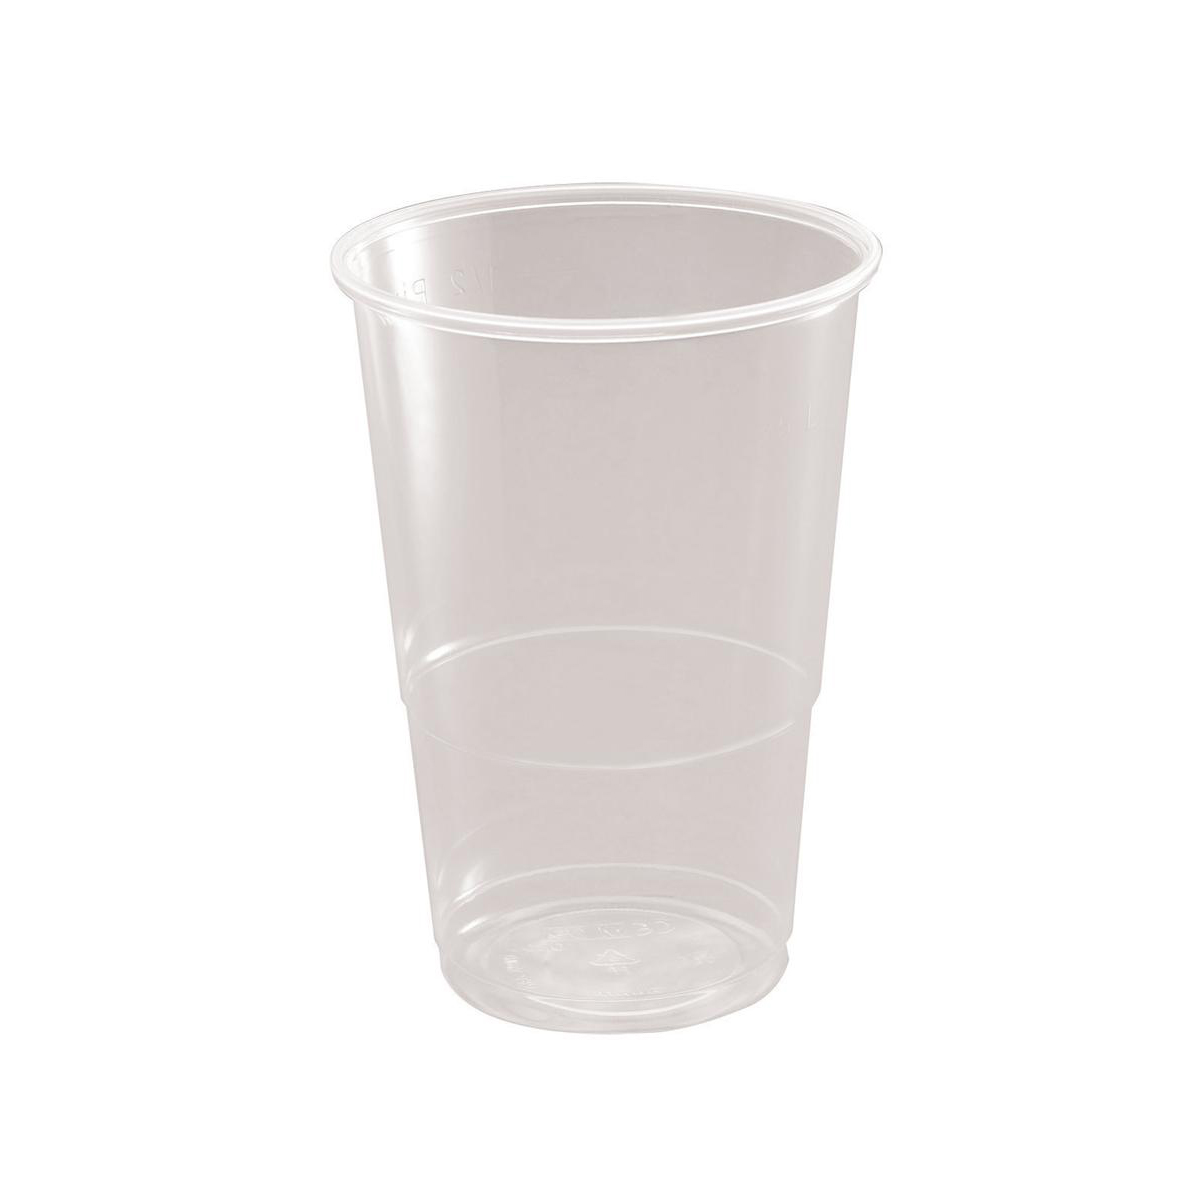 Disposable Cups & Accessories Half Pint Tumbler CE Marked Polypropylene 9.6oz 284ml Clear Ref 30010 Pack 50